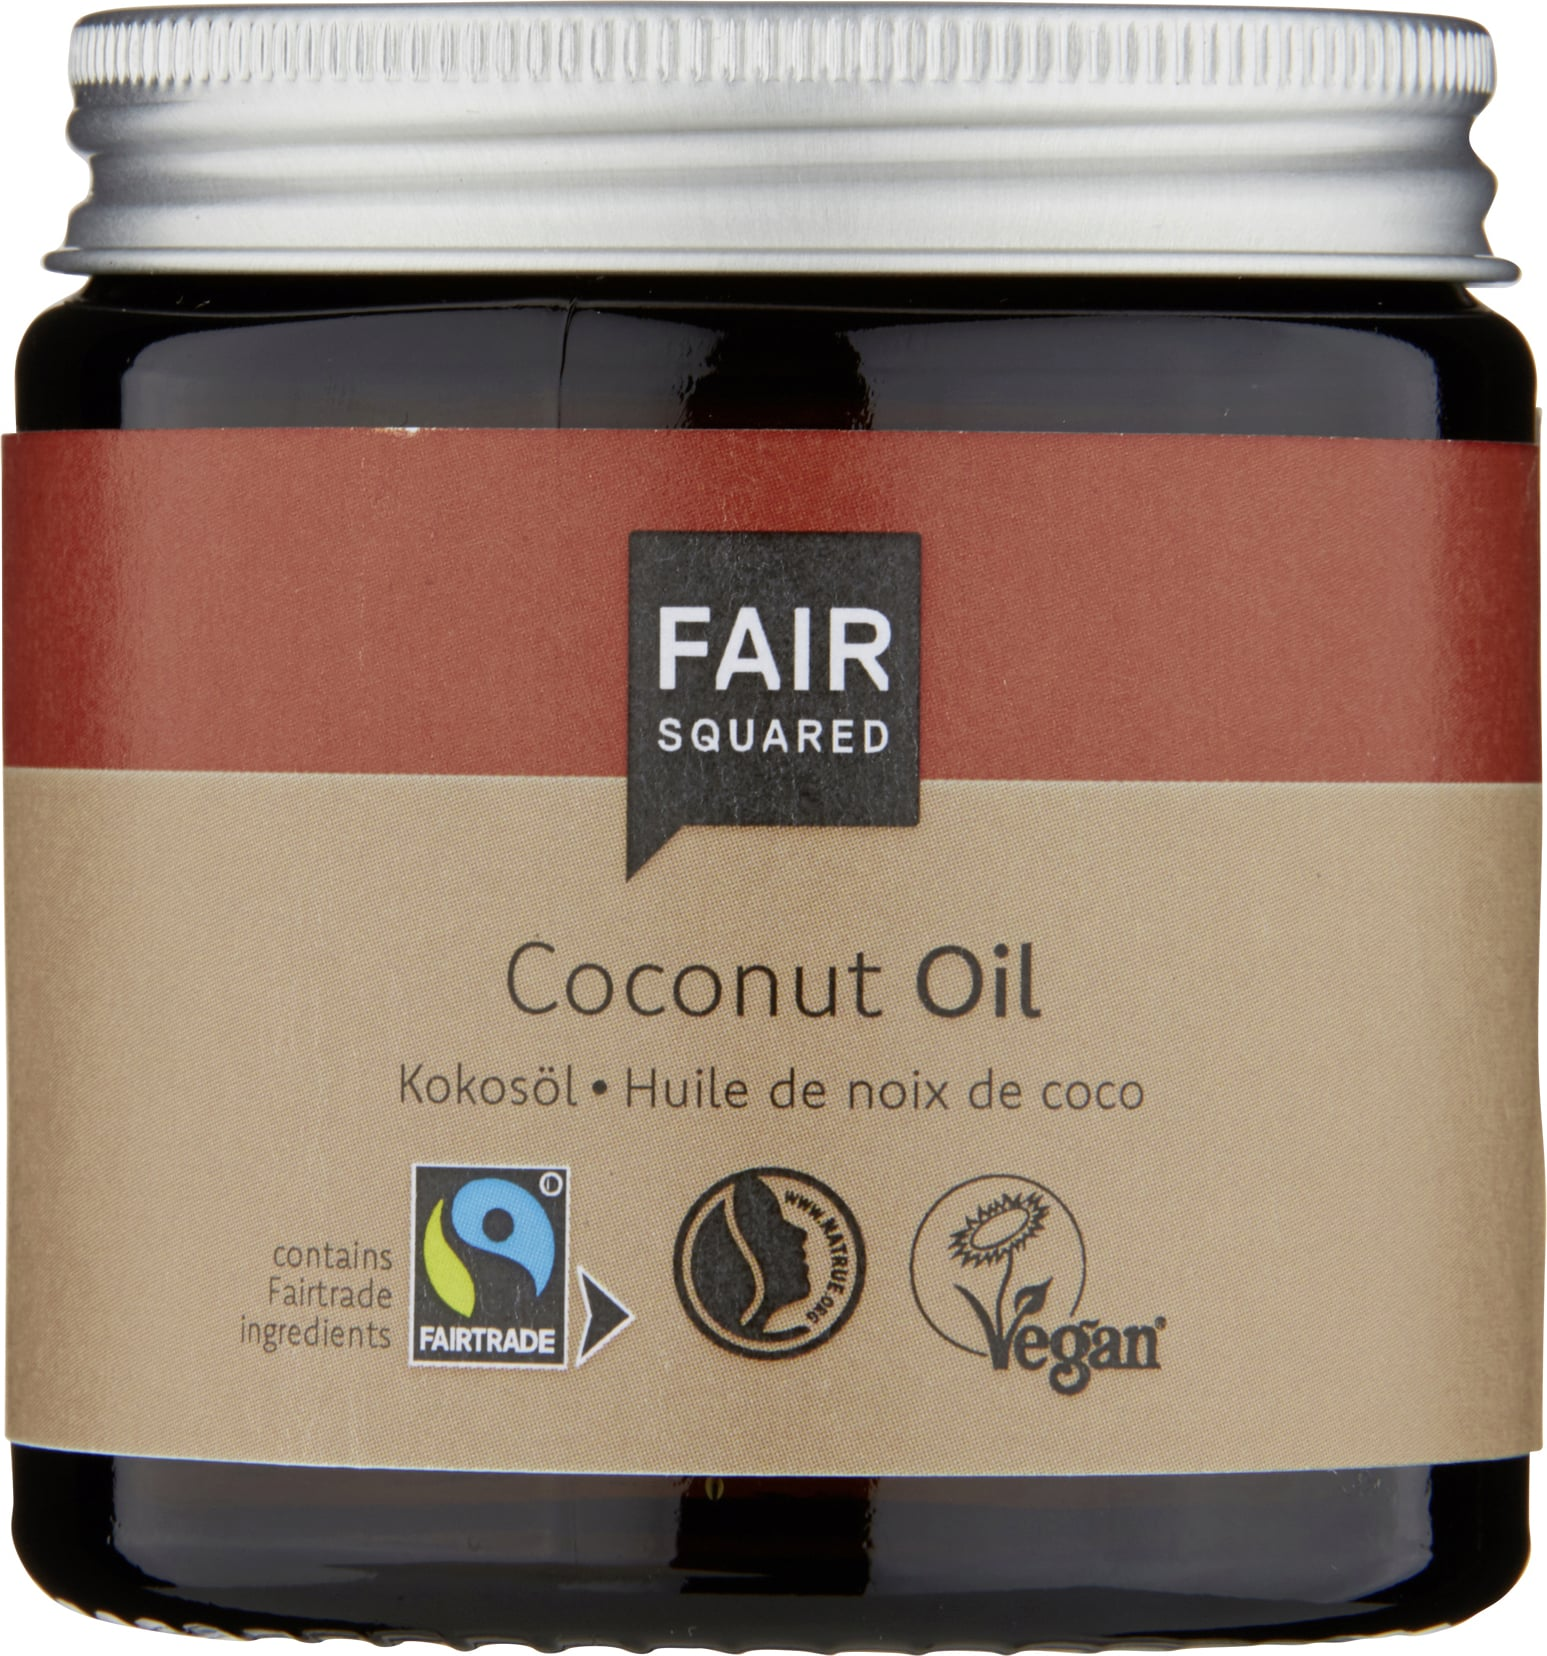 FAIR Squared Coconut Oil - 100 ml von FAIR Squared